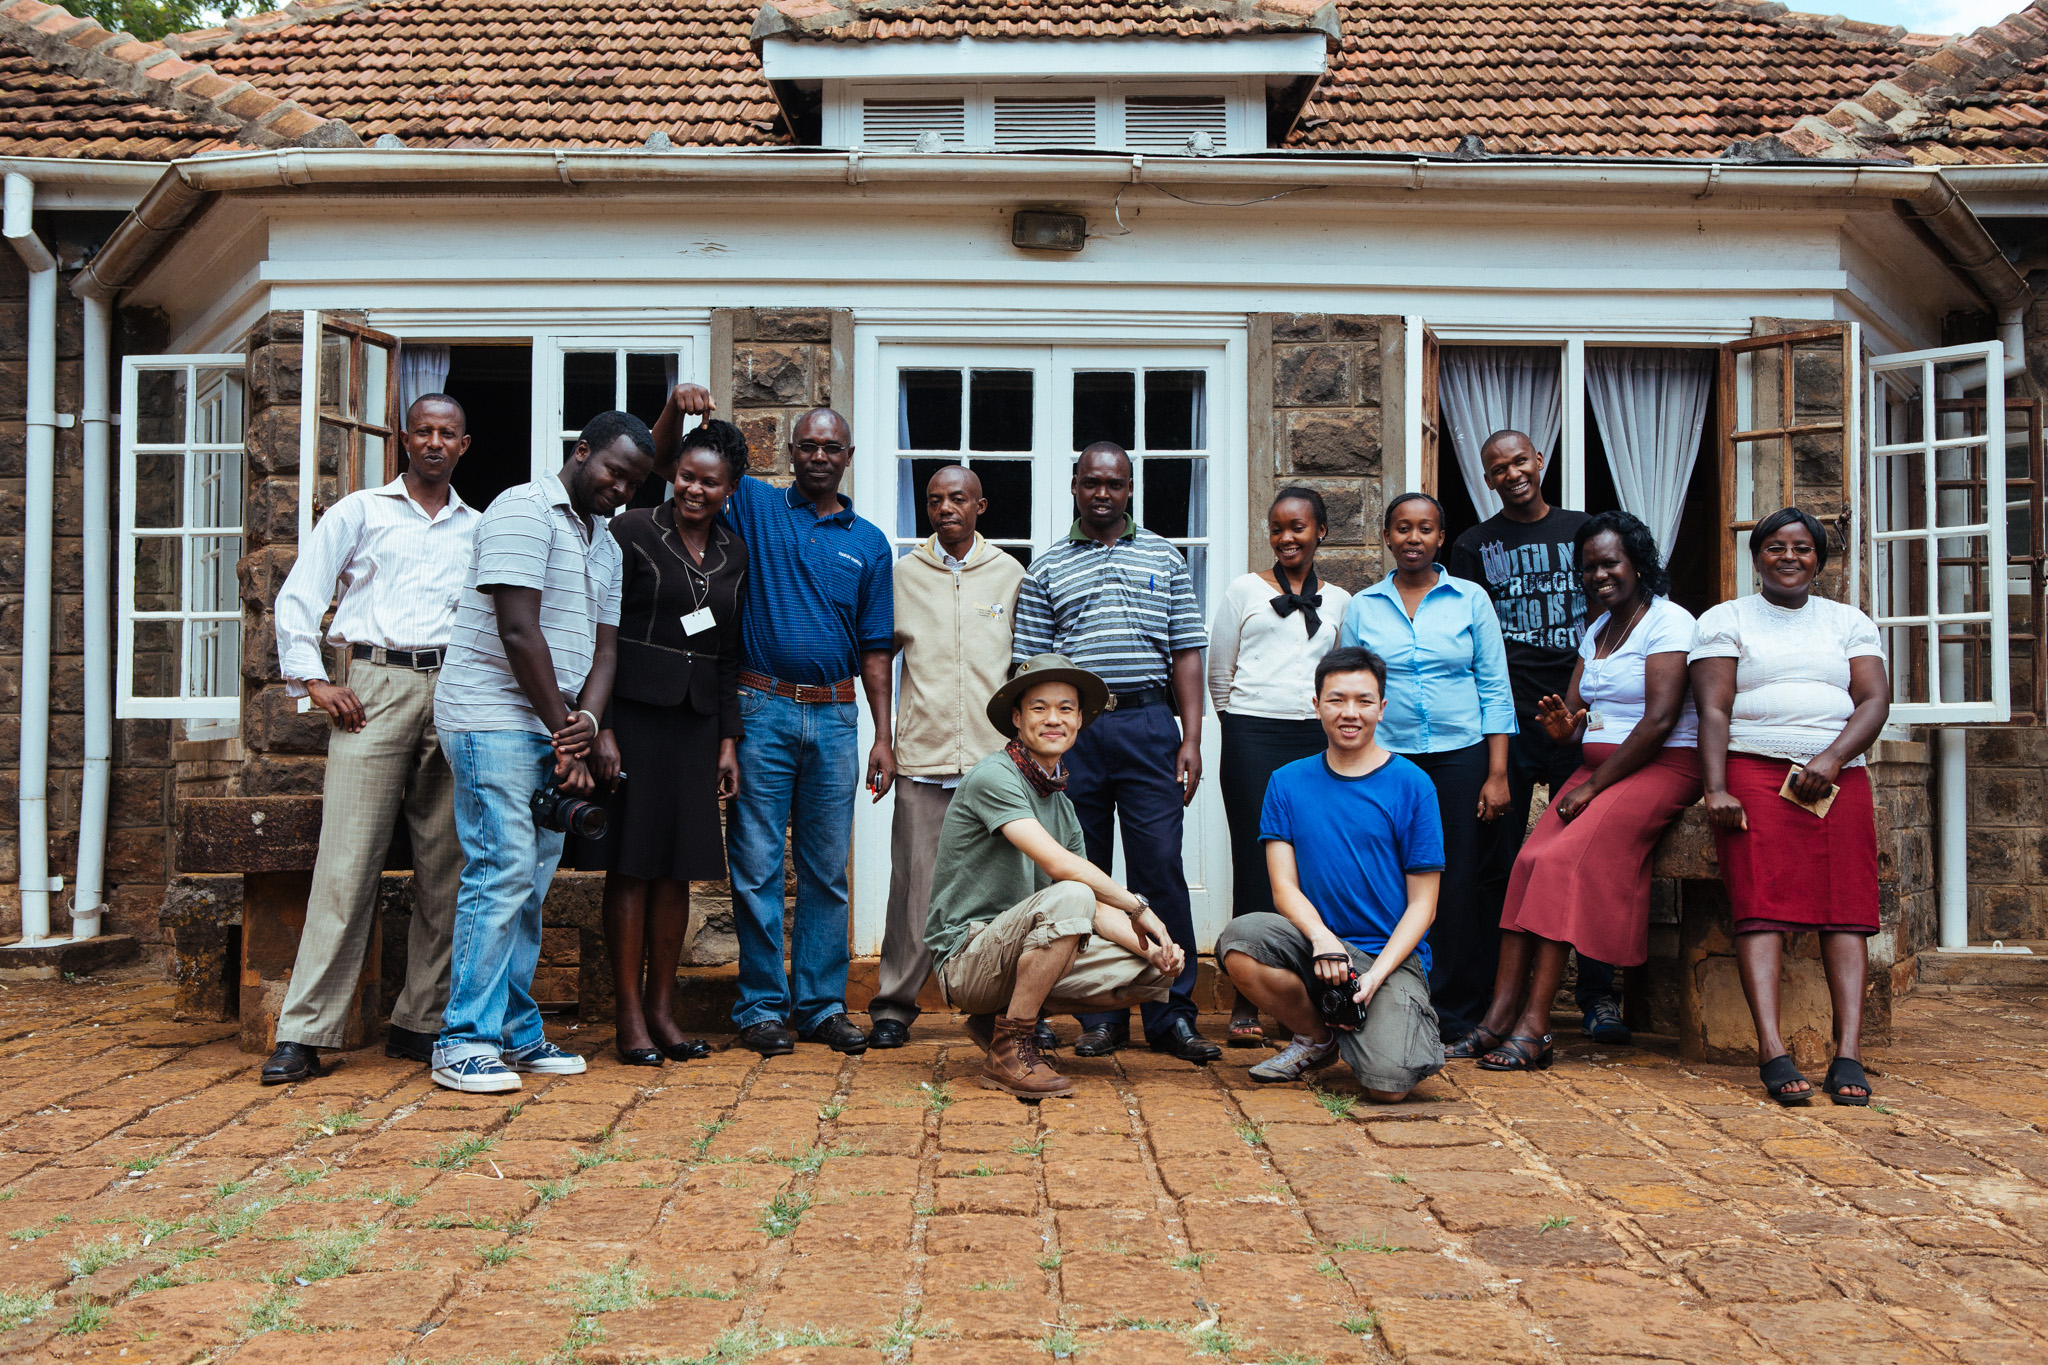 Joel (in blue) and me posing with the team at the Karen Blixen Museum in Kenya.